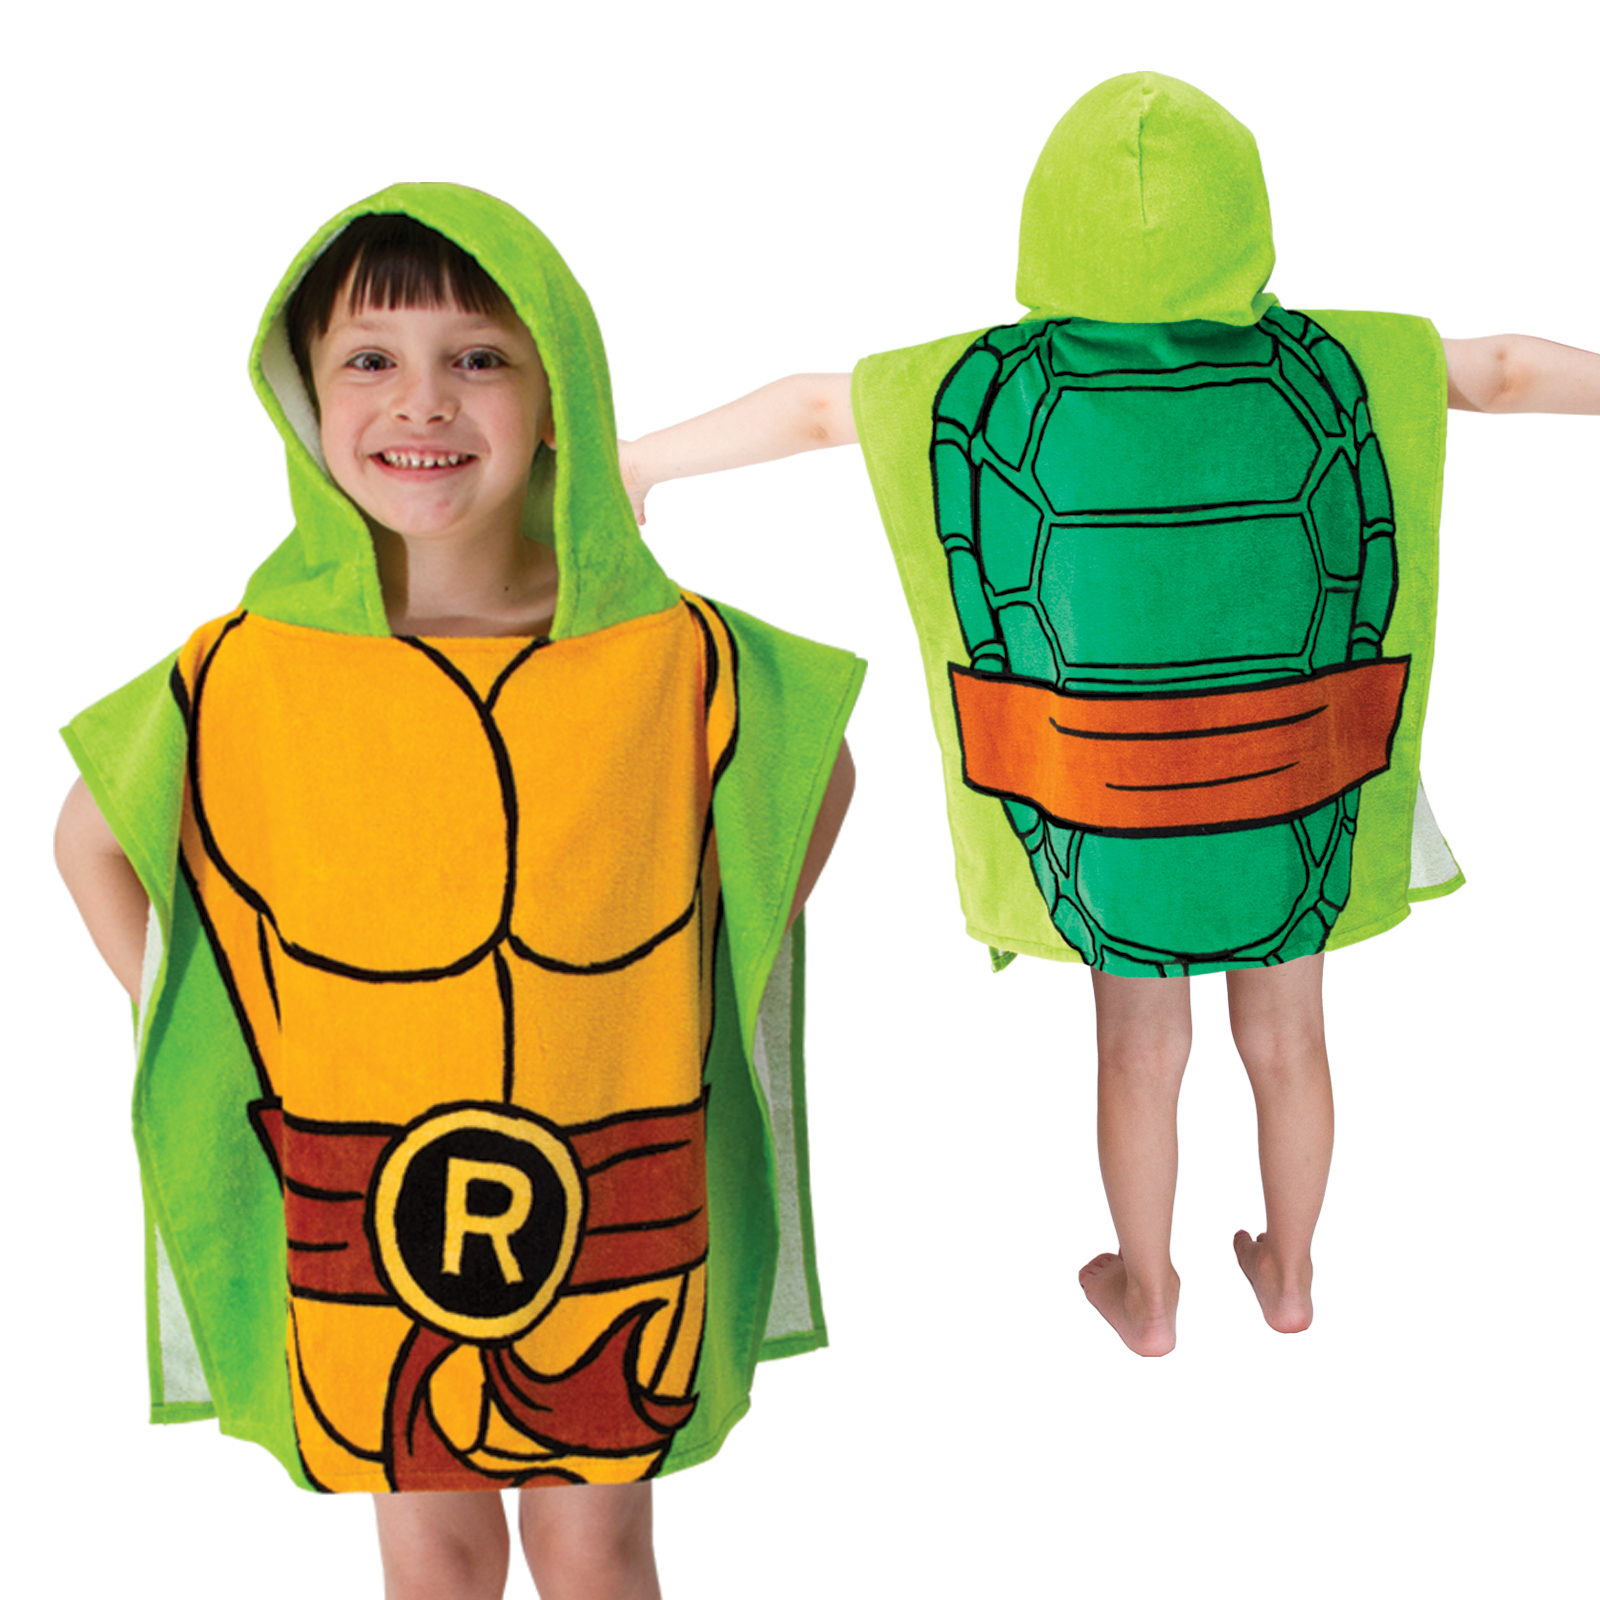 Nickelodeon Teenage Mutant Ninja Turtles Hooded Poncho Towel